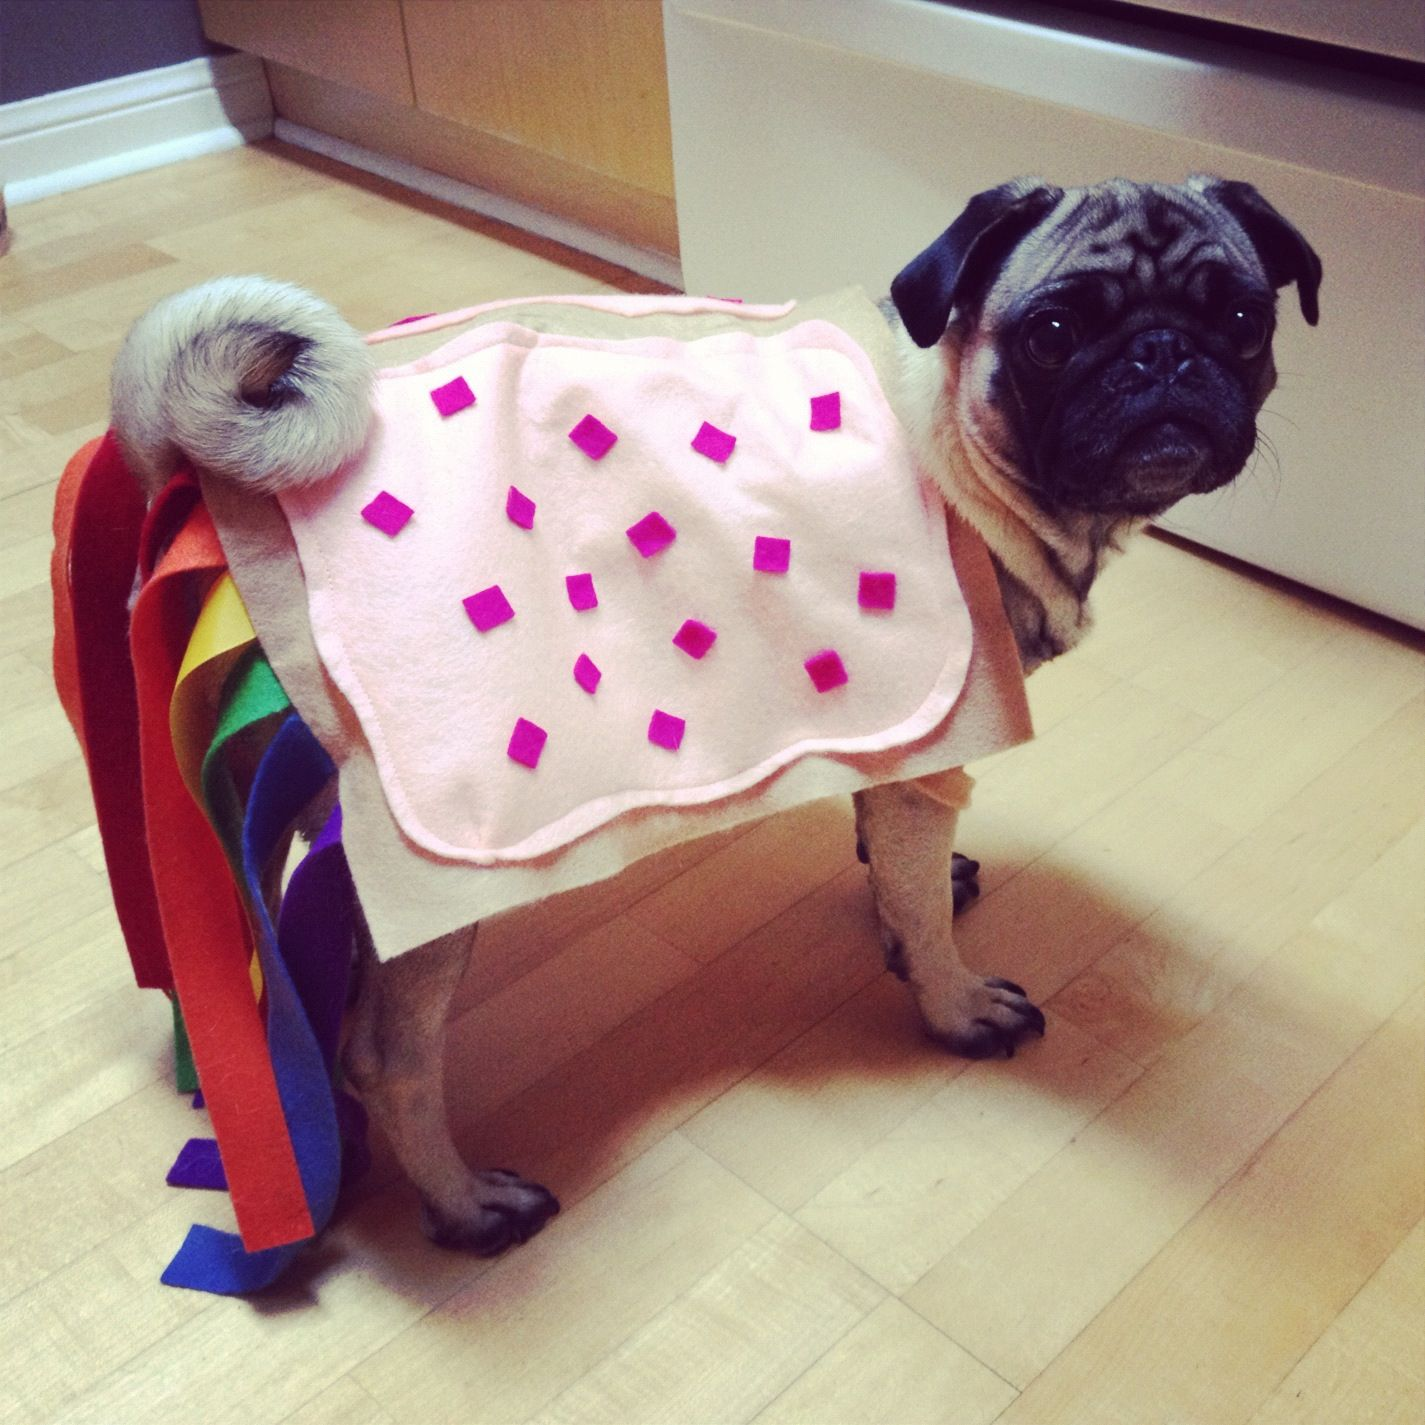 nyan pug is our favourite halloween costume this year making the internet sensation nyan cat into a felted pug version is fantastic - Pugs Halloween